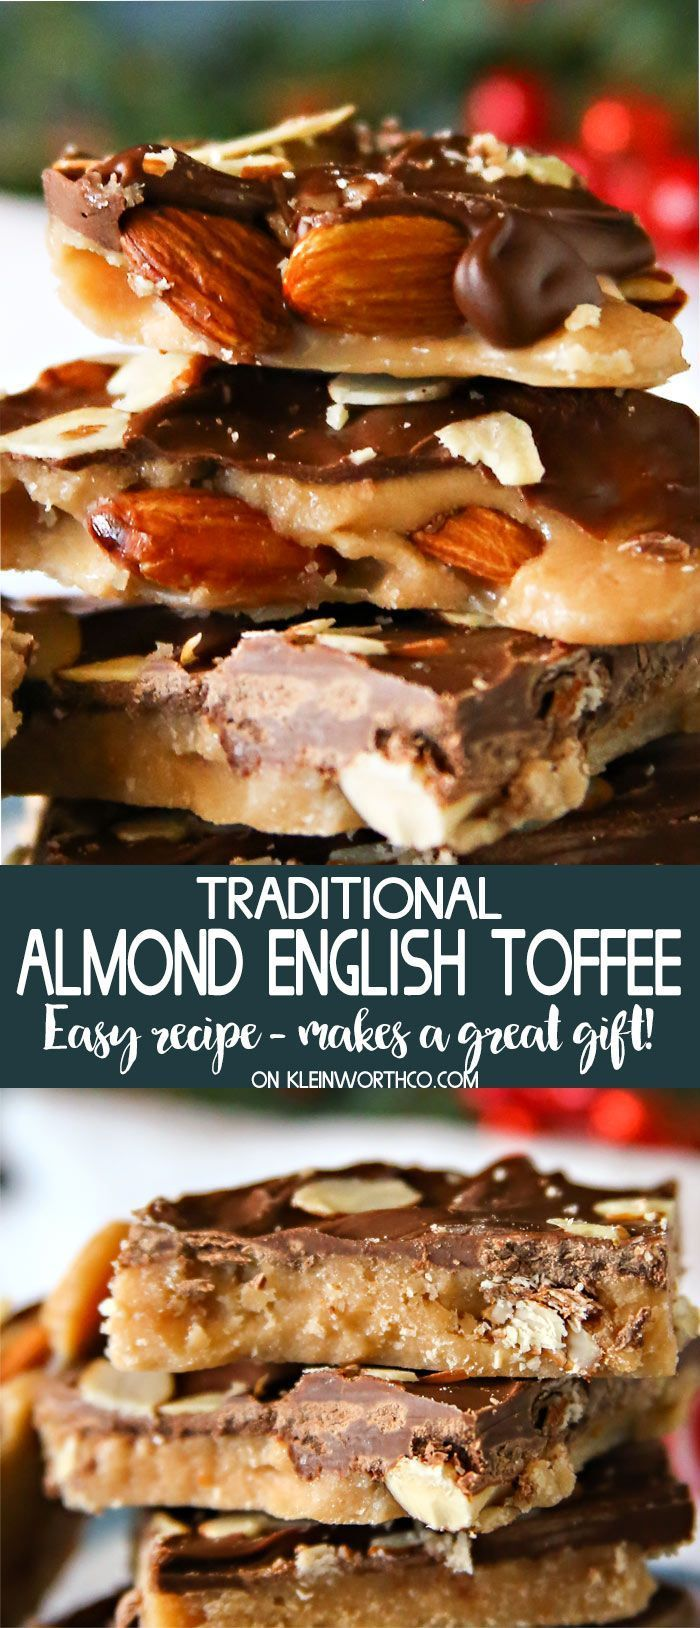 Traditional Almond English Toffee is easy to make & perfect for the holidays. If you need the perfect holiday food gift, make this English Toffee Recipe. via @KleinworthCo #toffee #almond #holiday #christmas #foodgift #chocolate